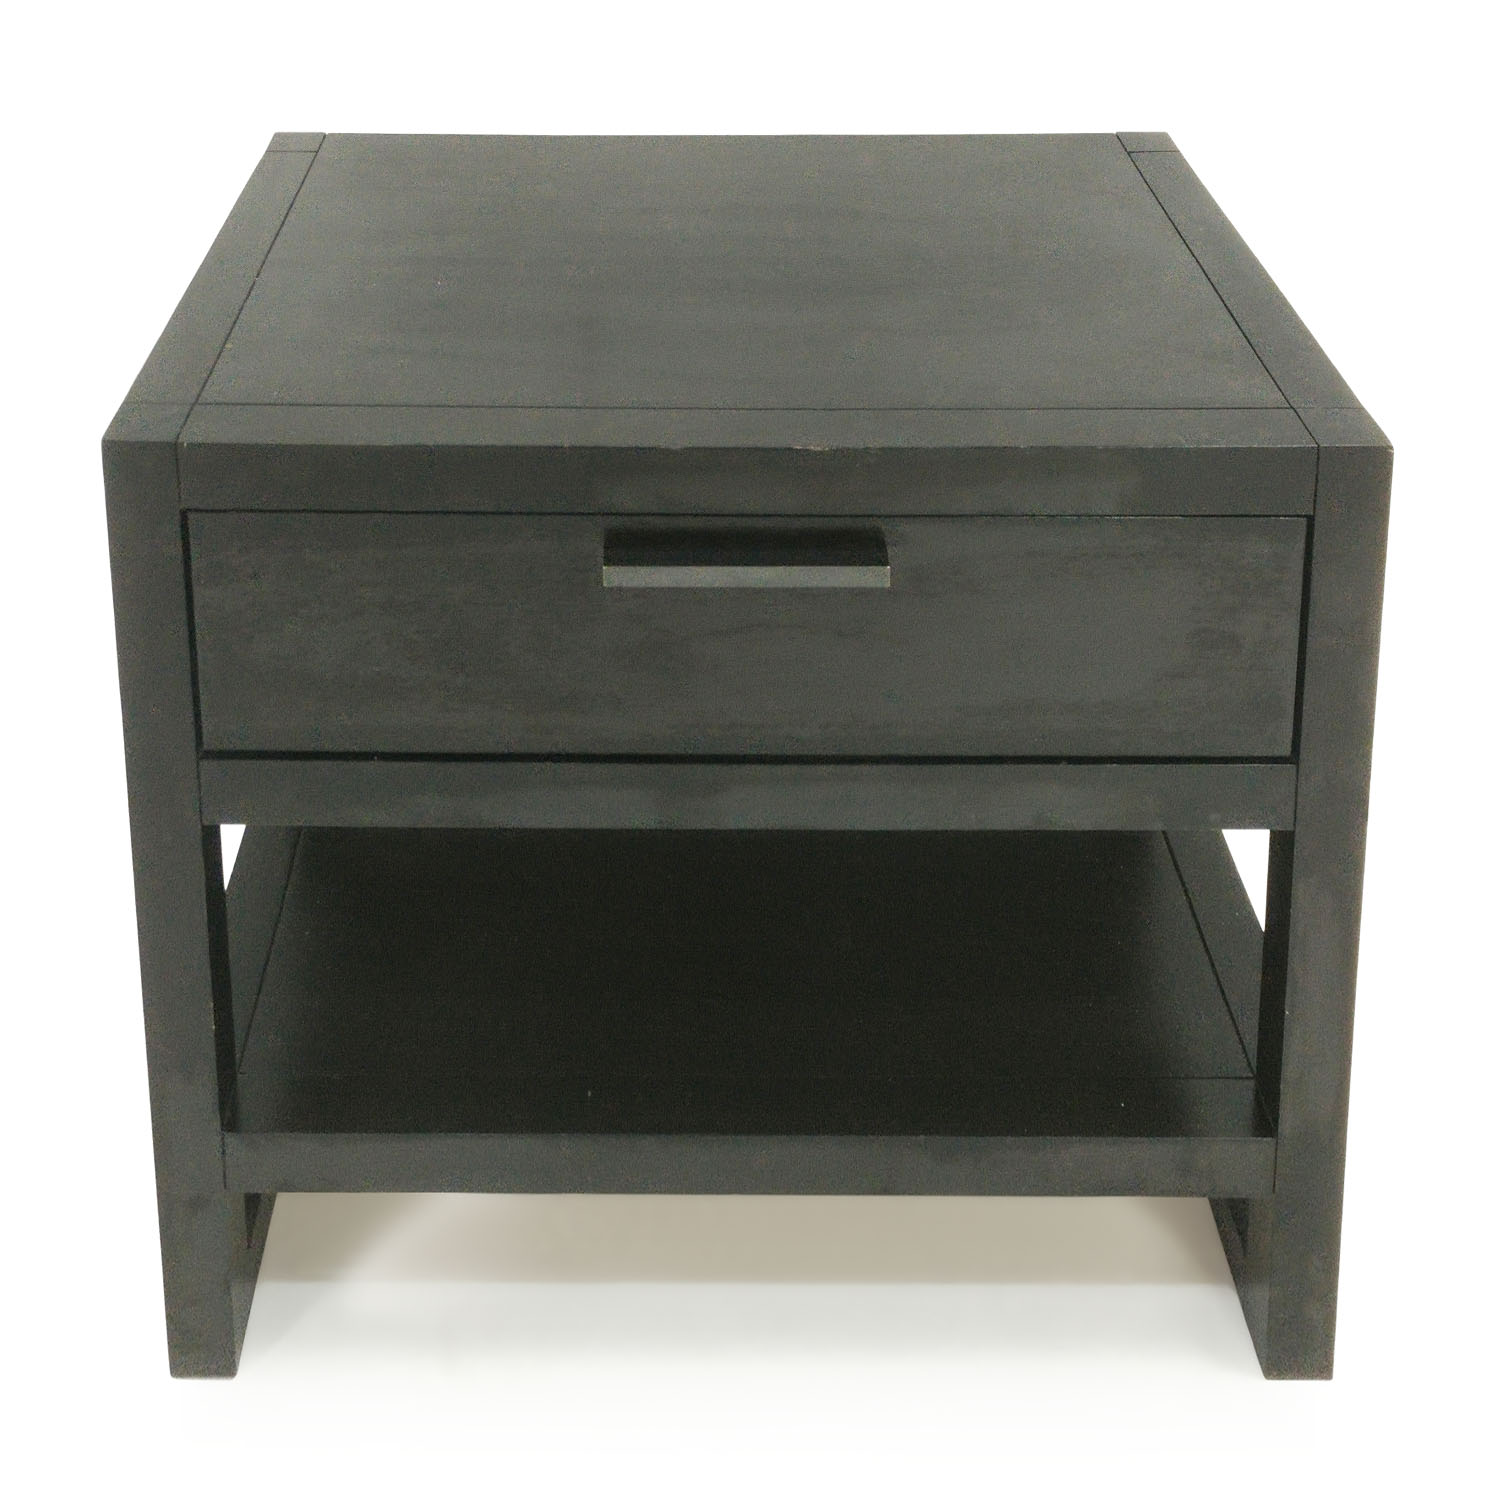 Macys Dark Wood Side Table sale